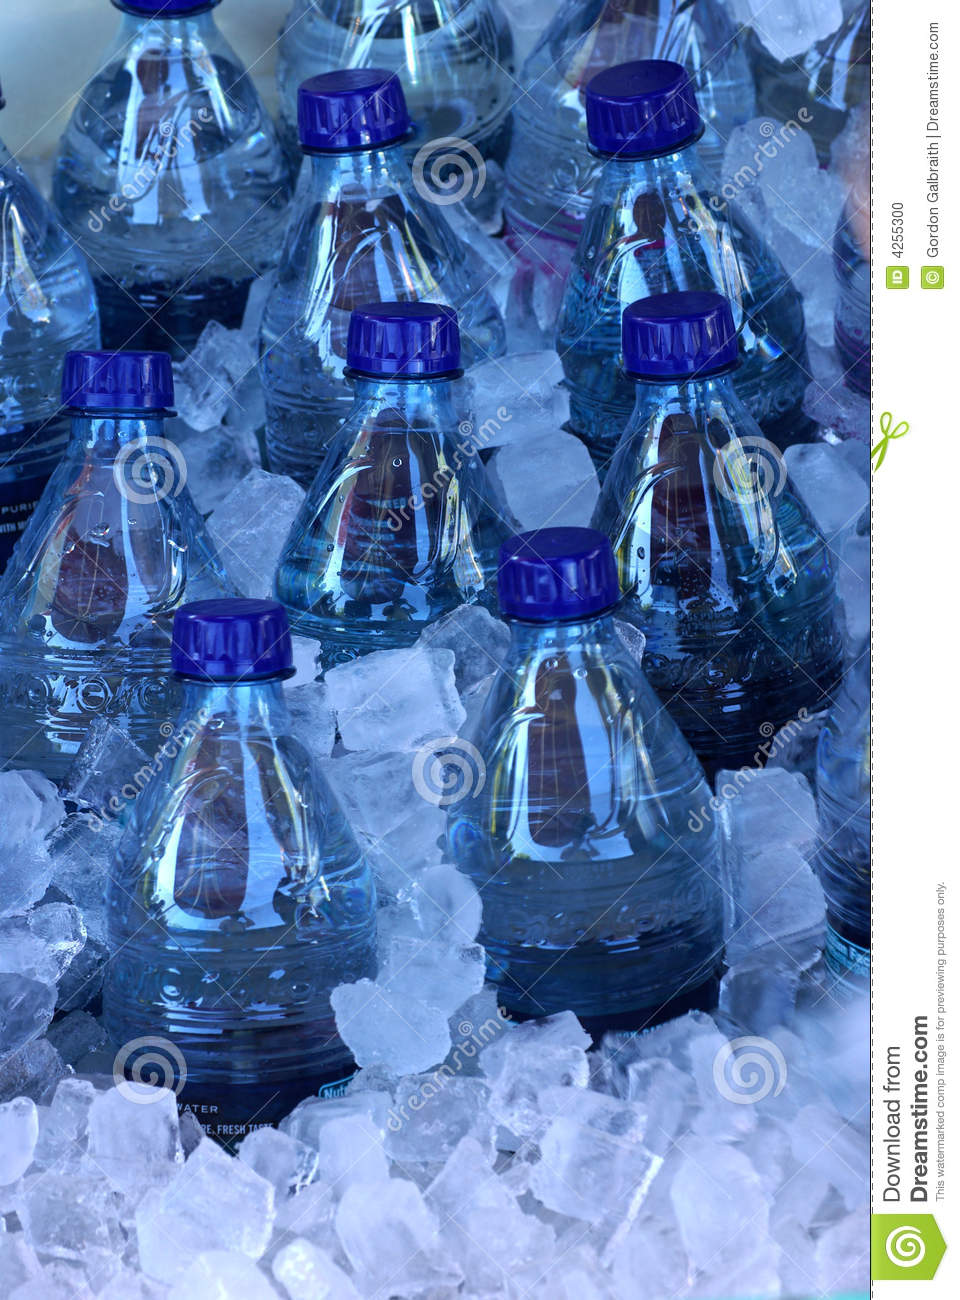 Water Bottles In Ice Stock Photo Image 4255300